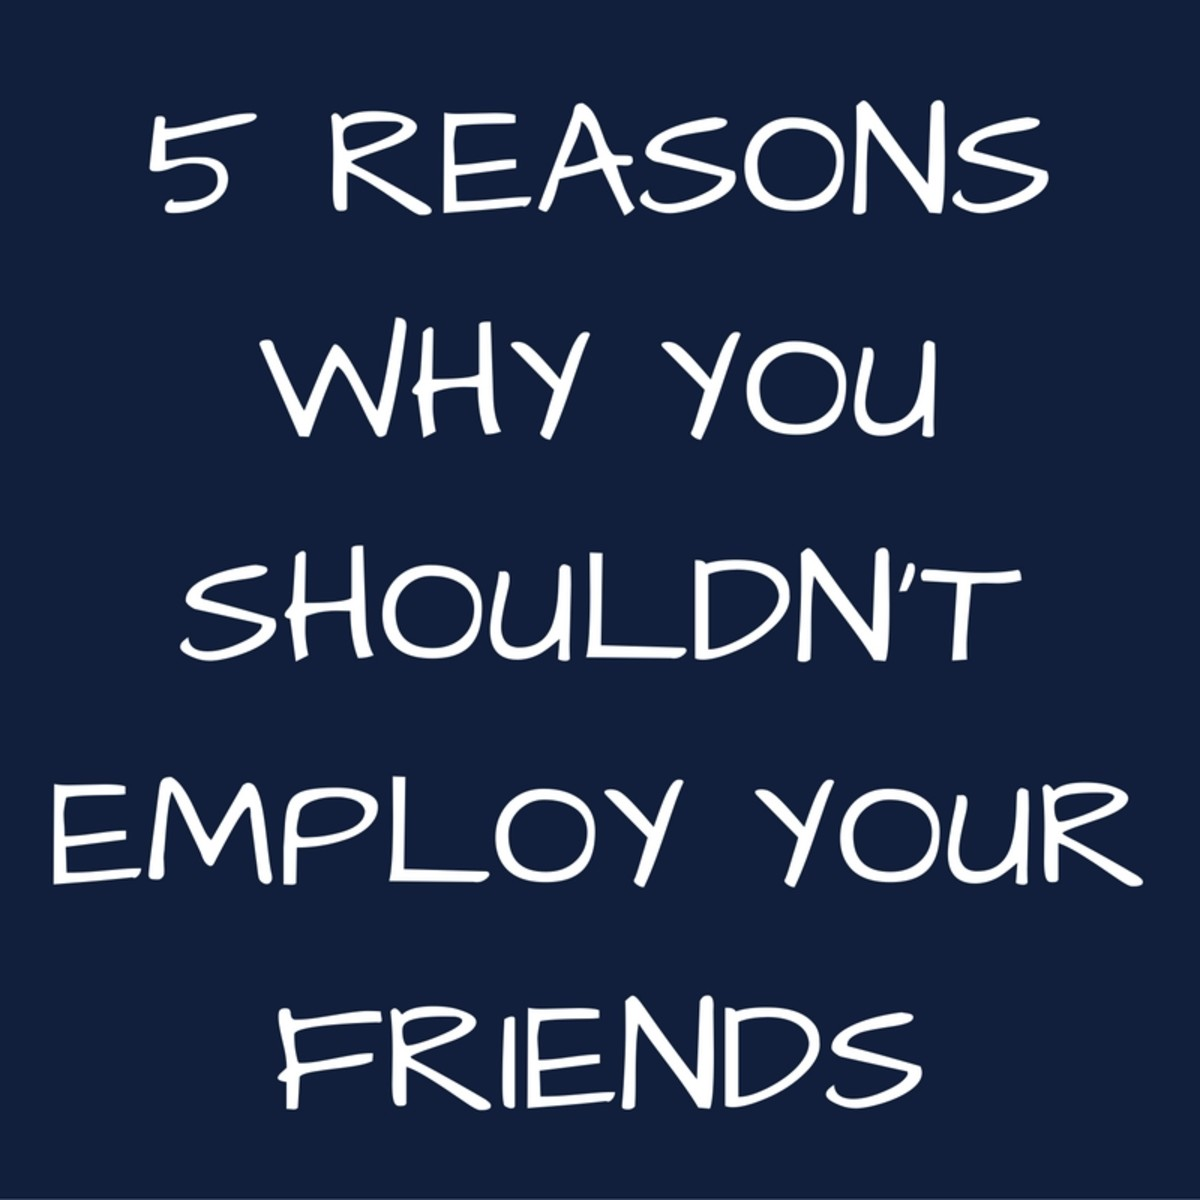 5 reasons why you shouldn't employ friends